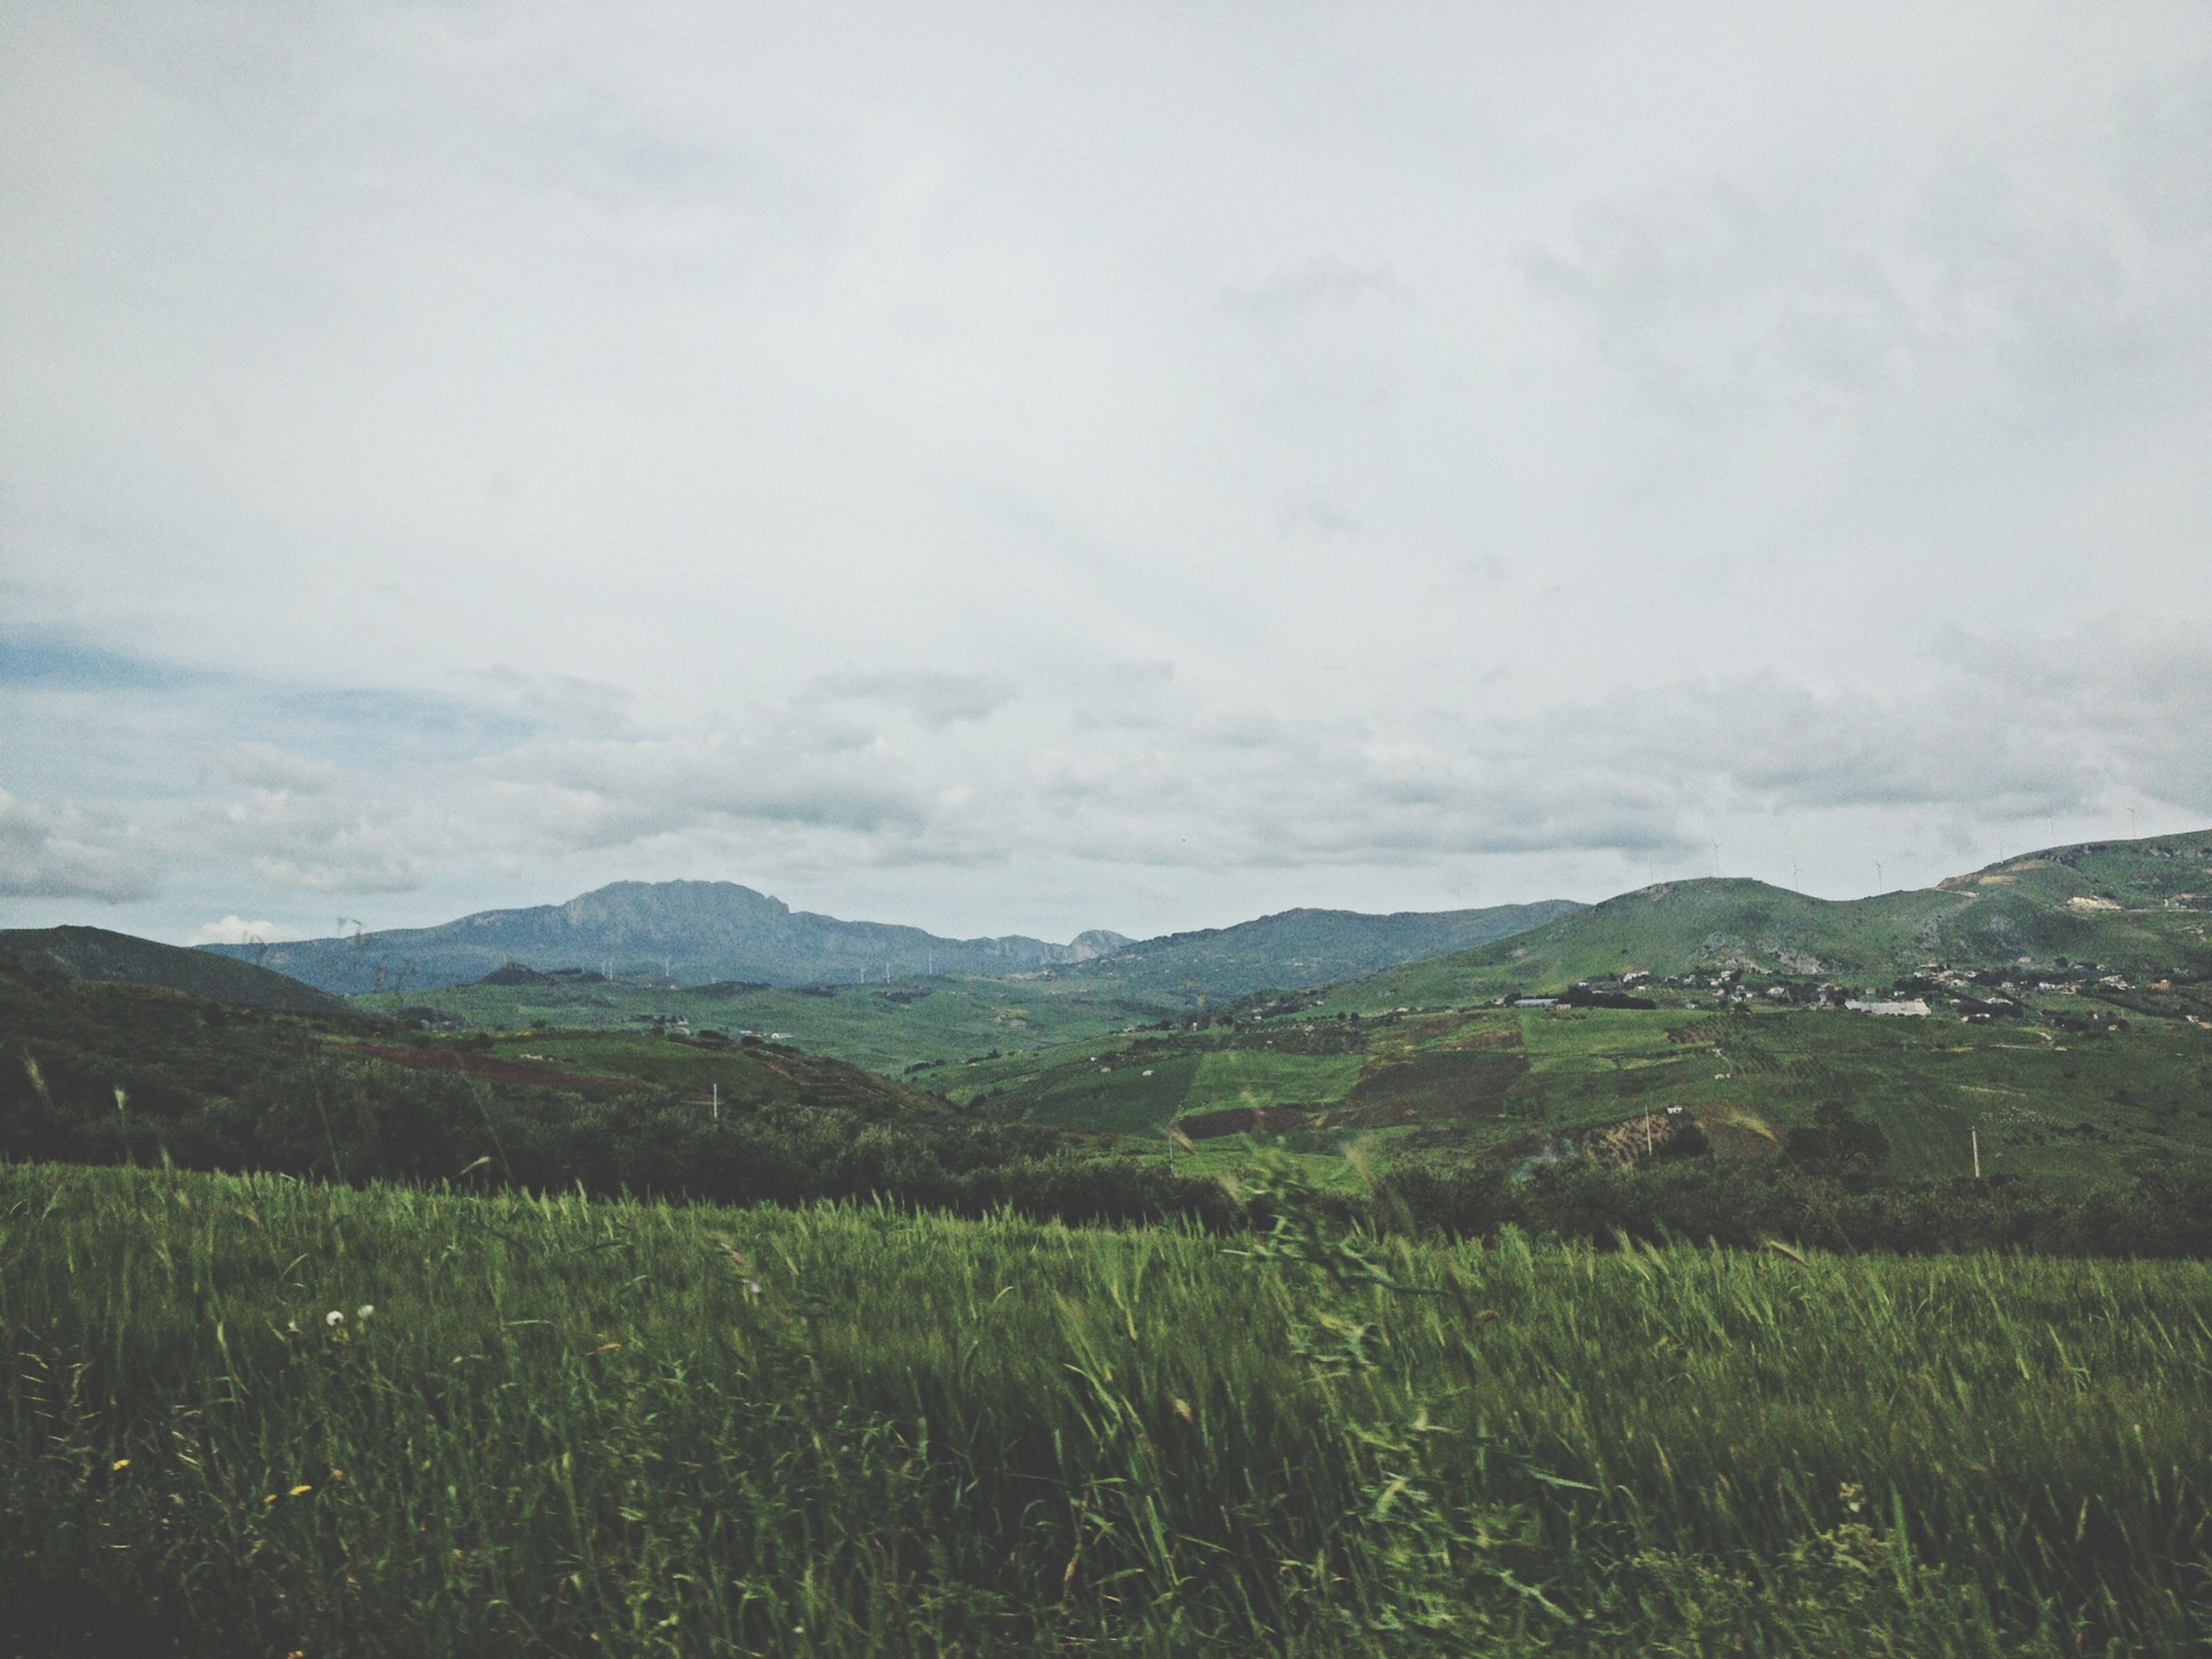 mountain, tranquil scene, landscape, tranquility, scenics, sky, beauty in nature, mountain range, grass, nature, field, non-urban scene, growth, cloud - sky, plant, idyllic, green color, cloud, remote, day